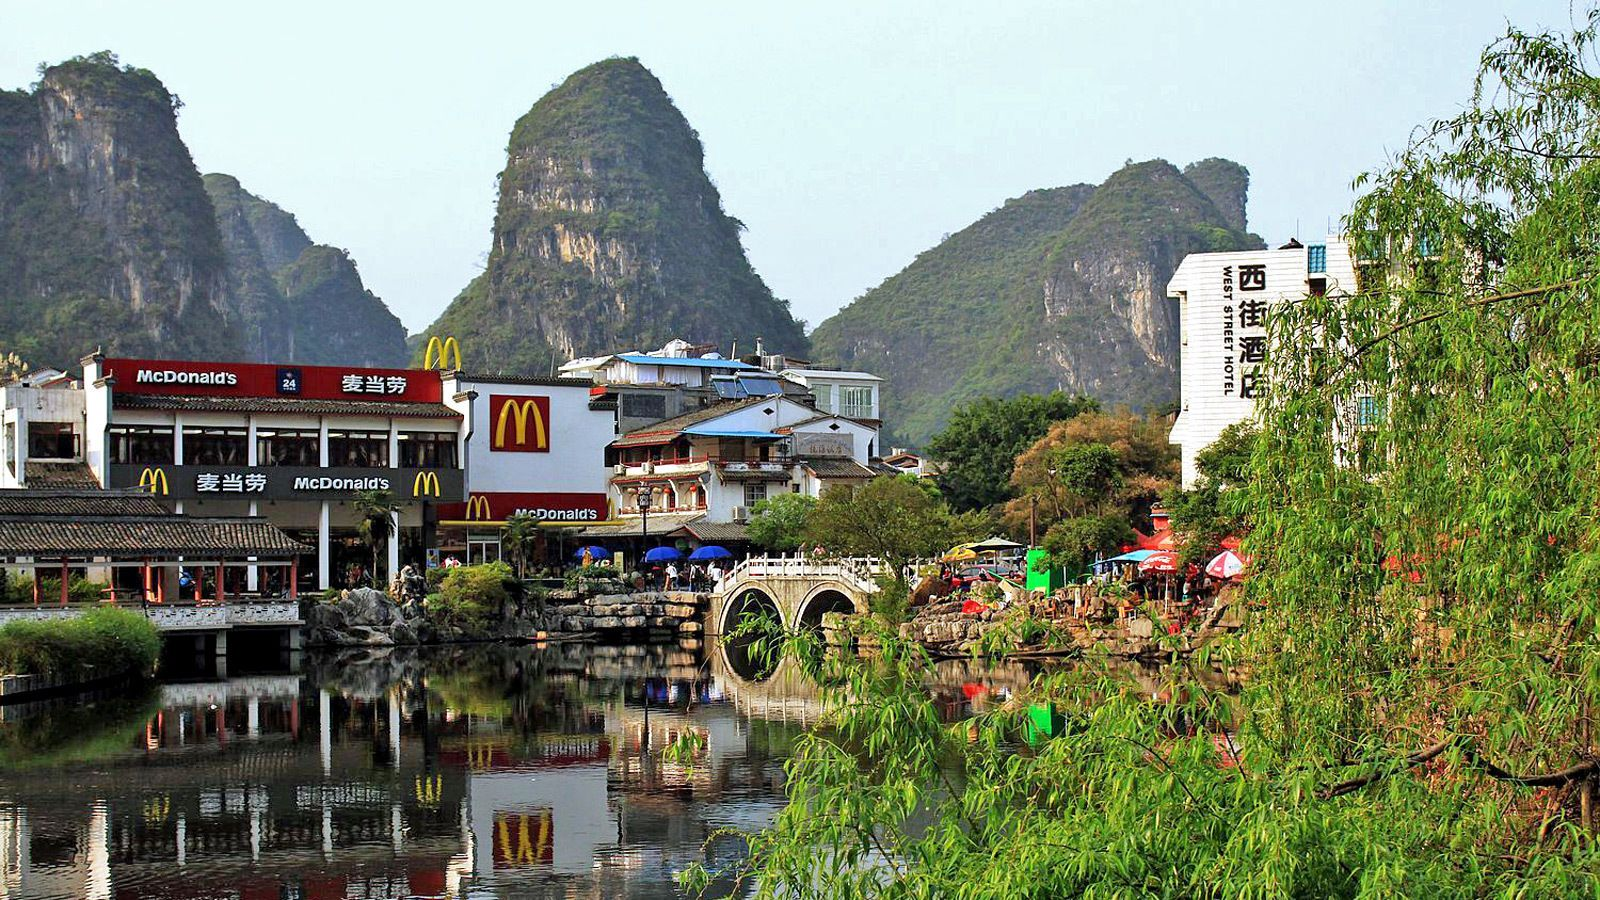 Panoramic view of the beautiful city of Guilin